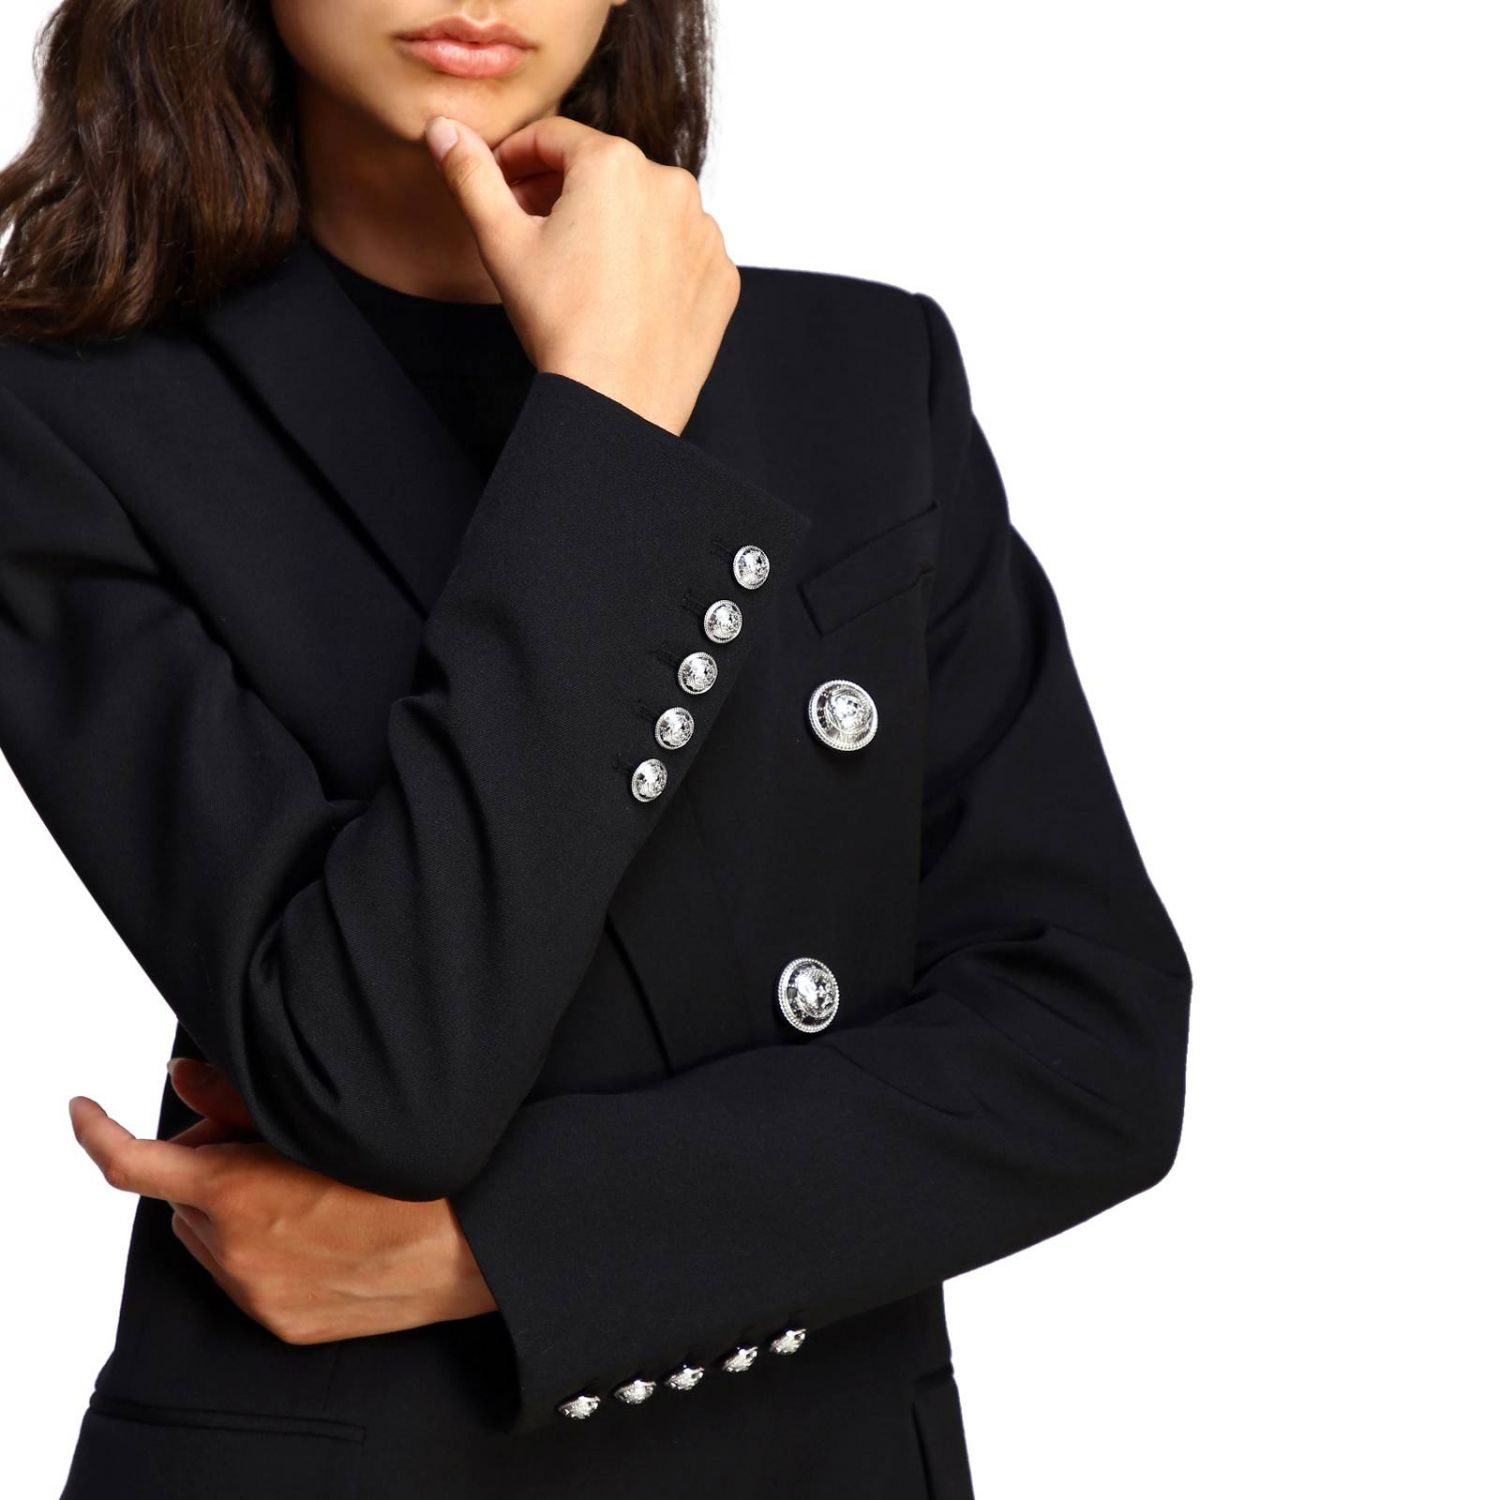 Balmain double-breasted blazer with jewel buttons black 5